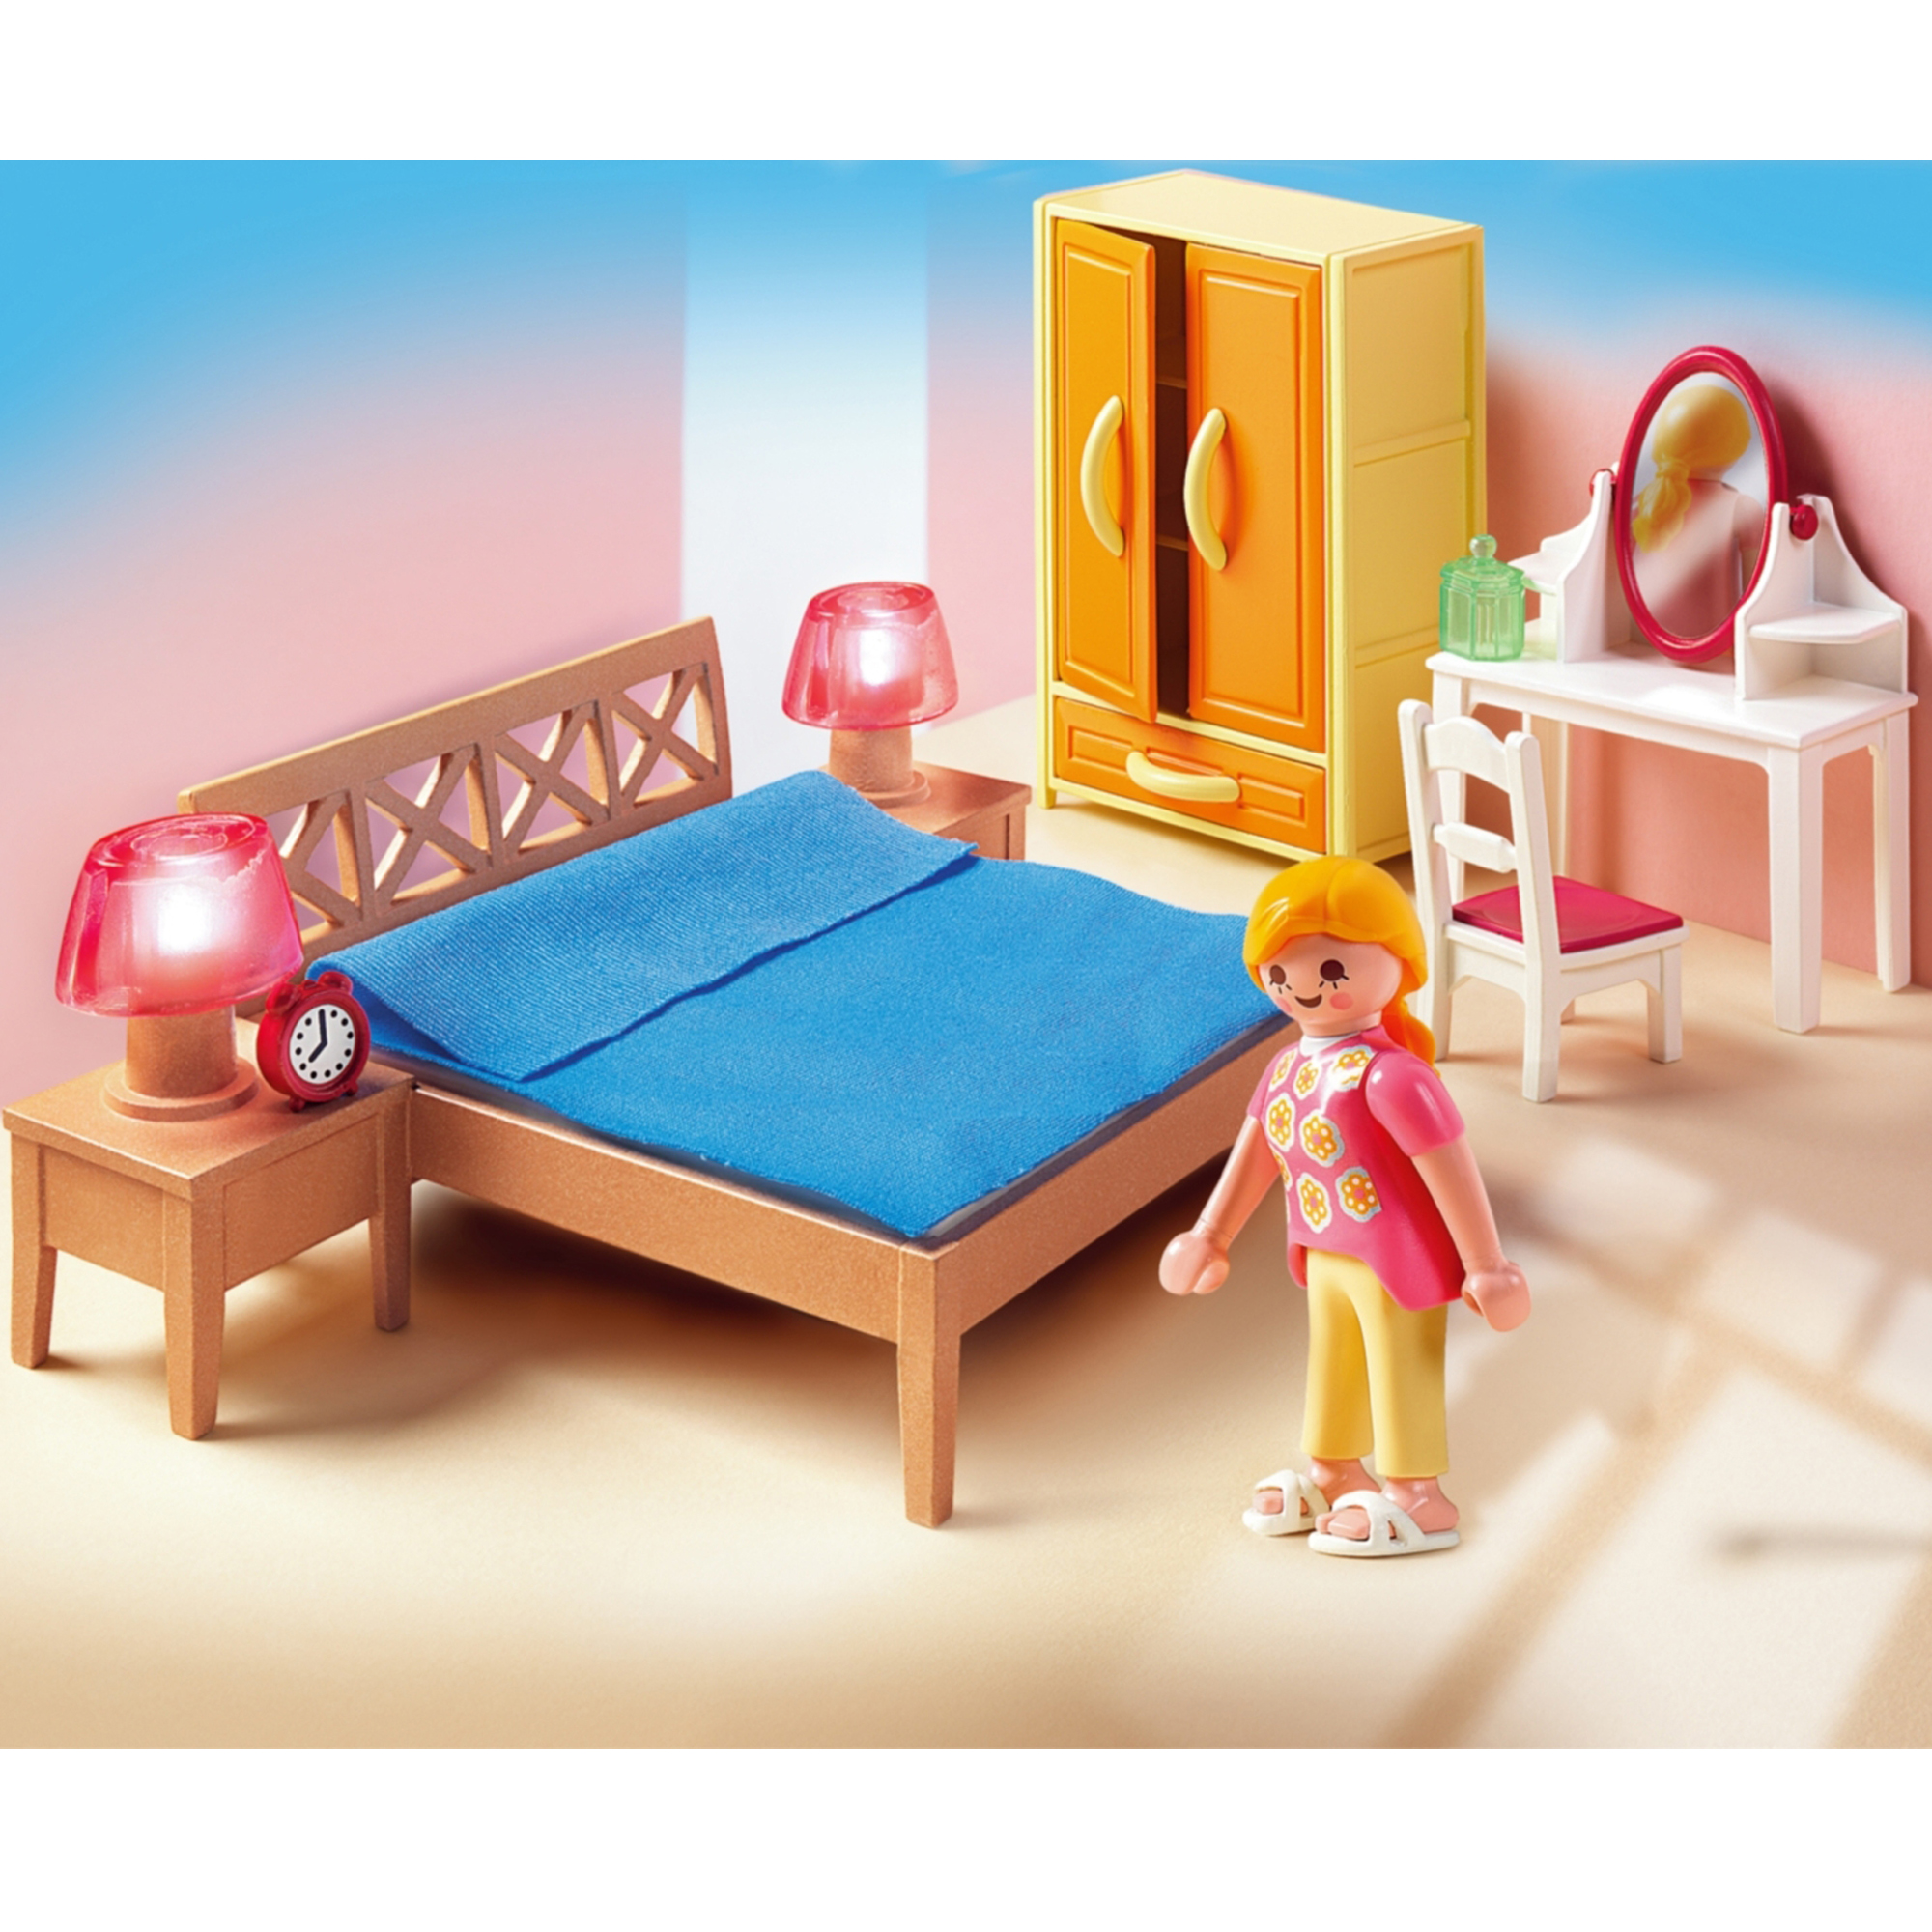 Playmobil Esszimmer 5335 Playmobil Grande Mansion Parents 39 Bedroom 5331